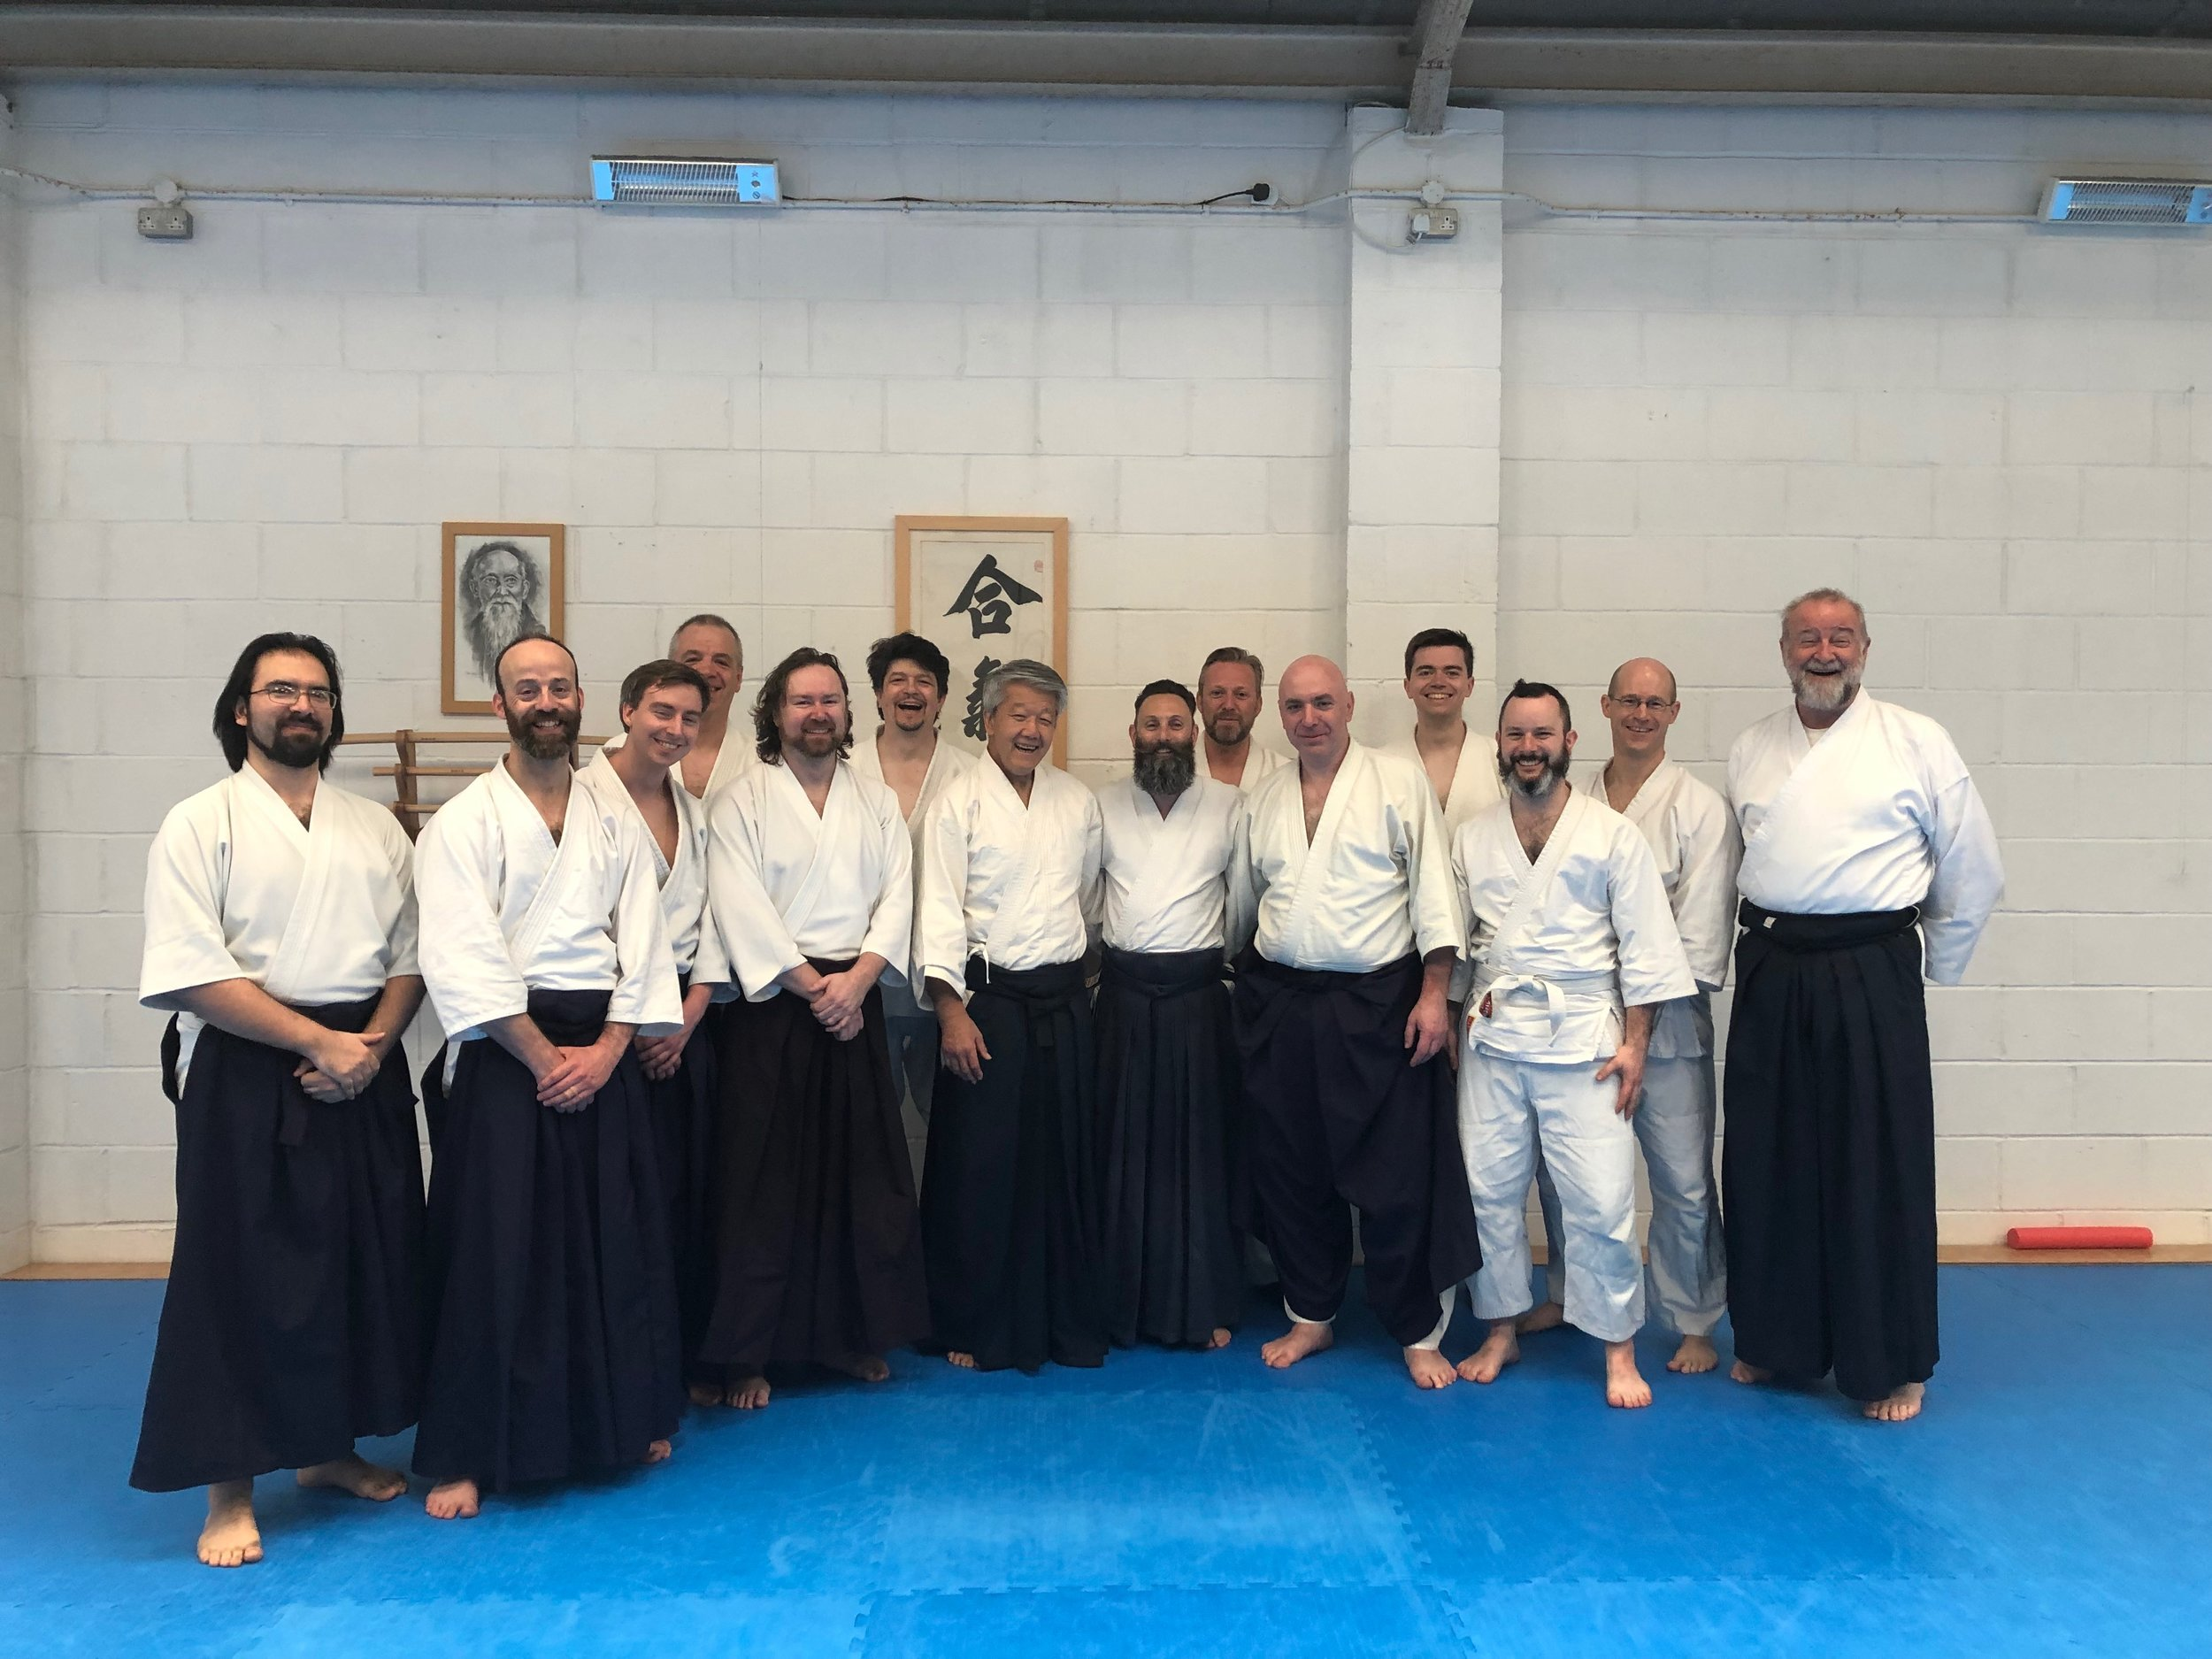 Photo with Sensei at his annual UK seminar weekend in Coventry - 28/04/19